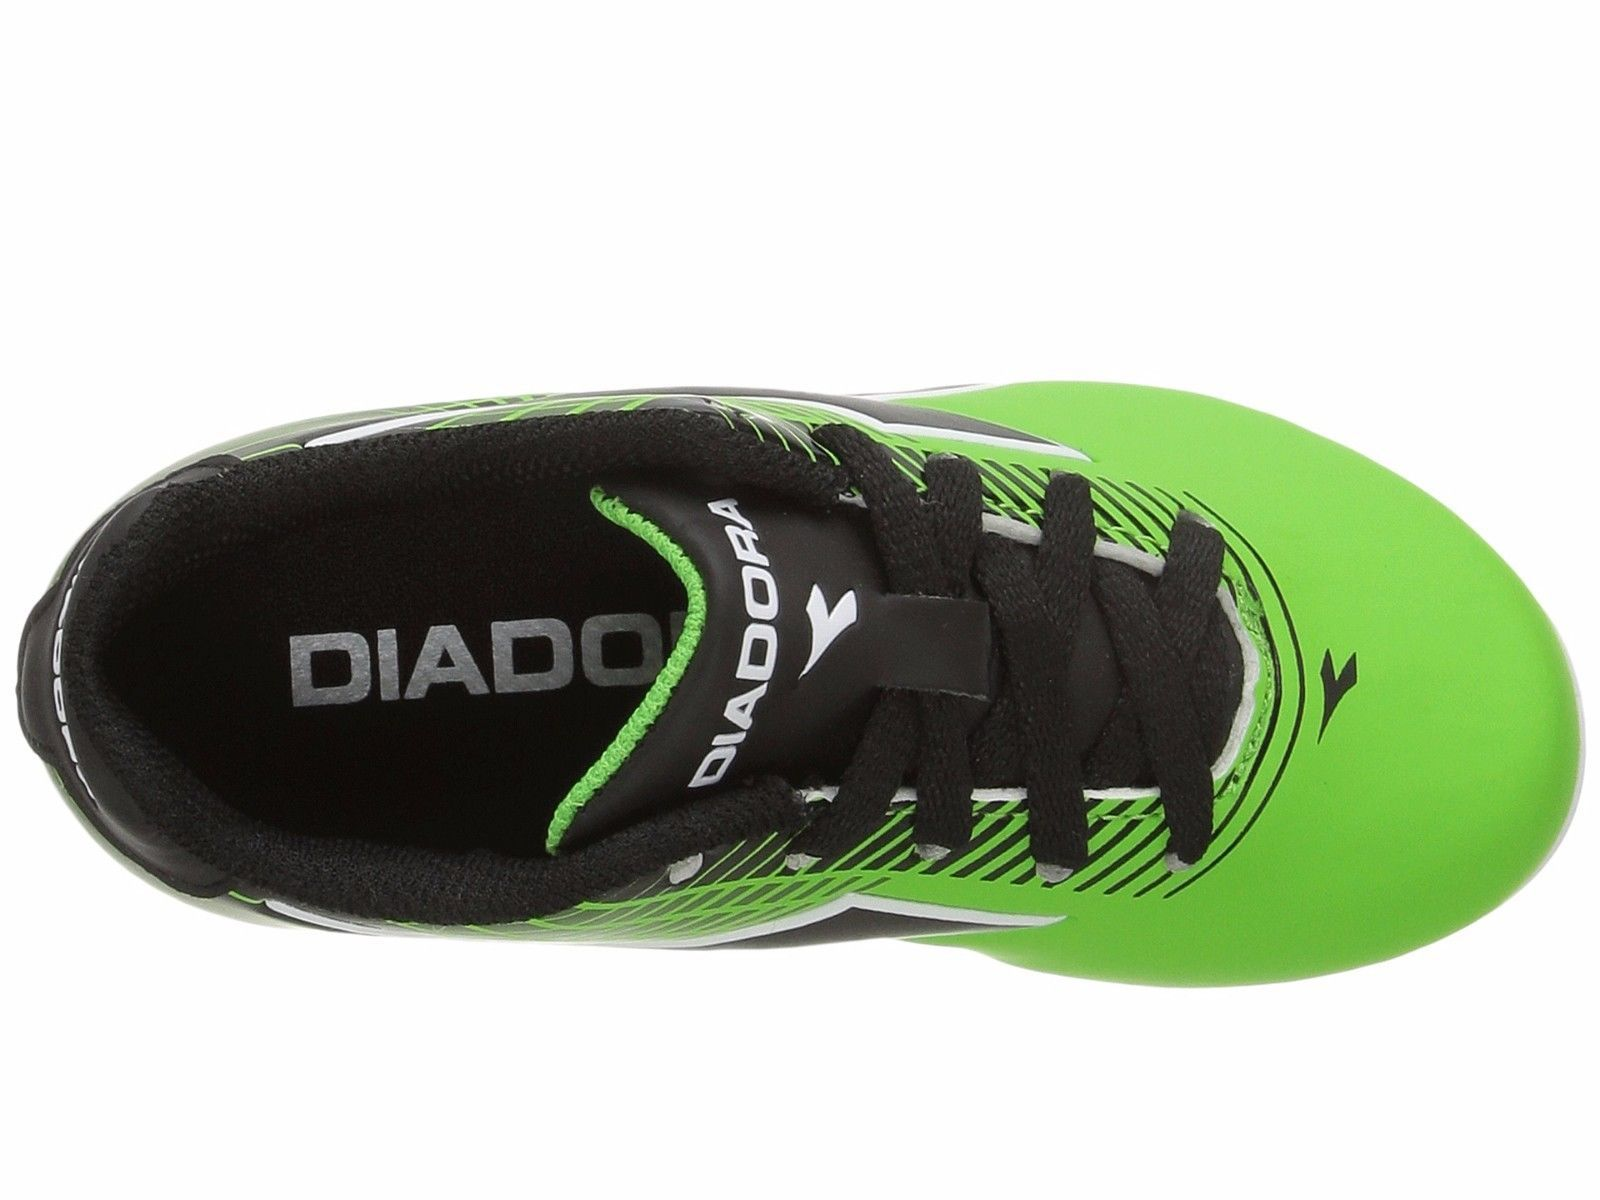 98a5be1619a Diadora Ladro MD JR Soccer Cleats Lime Green   Black Toddler Kids Youth  Sizes